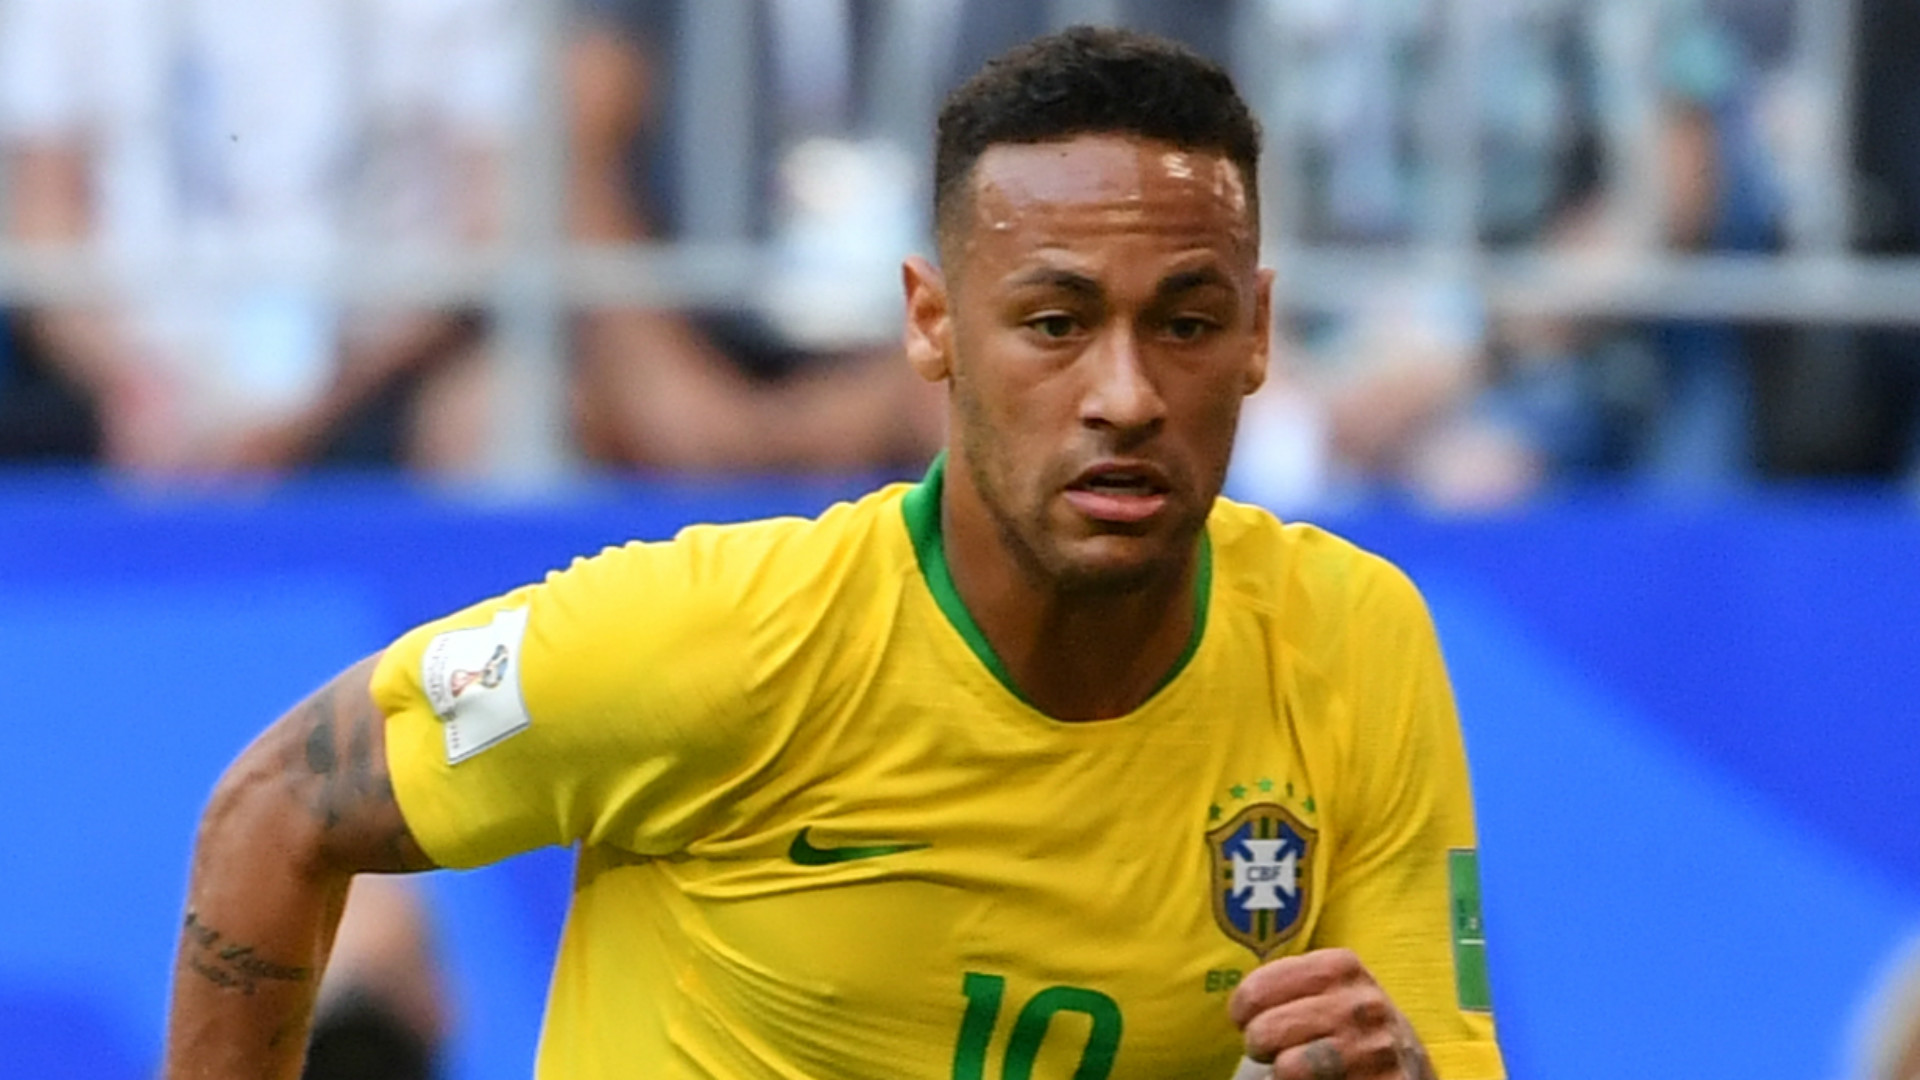 Belgium vs. Brazil odds, lines, expert picks, and top insider predictions